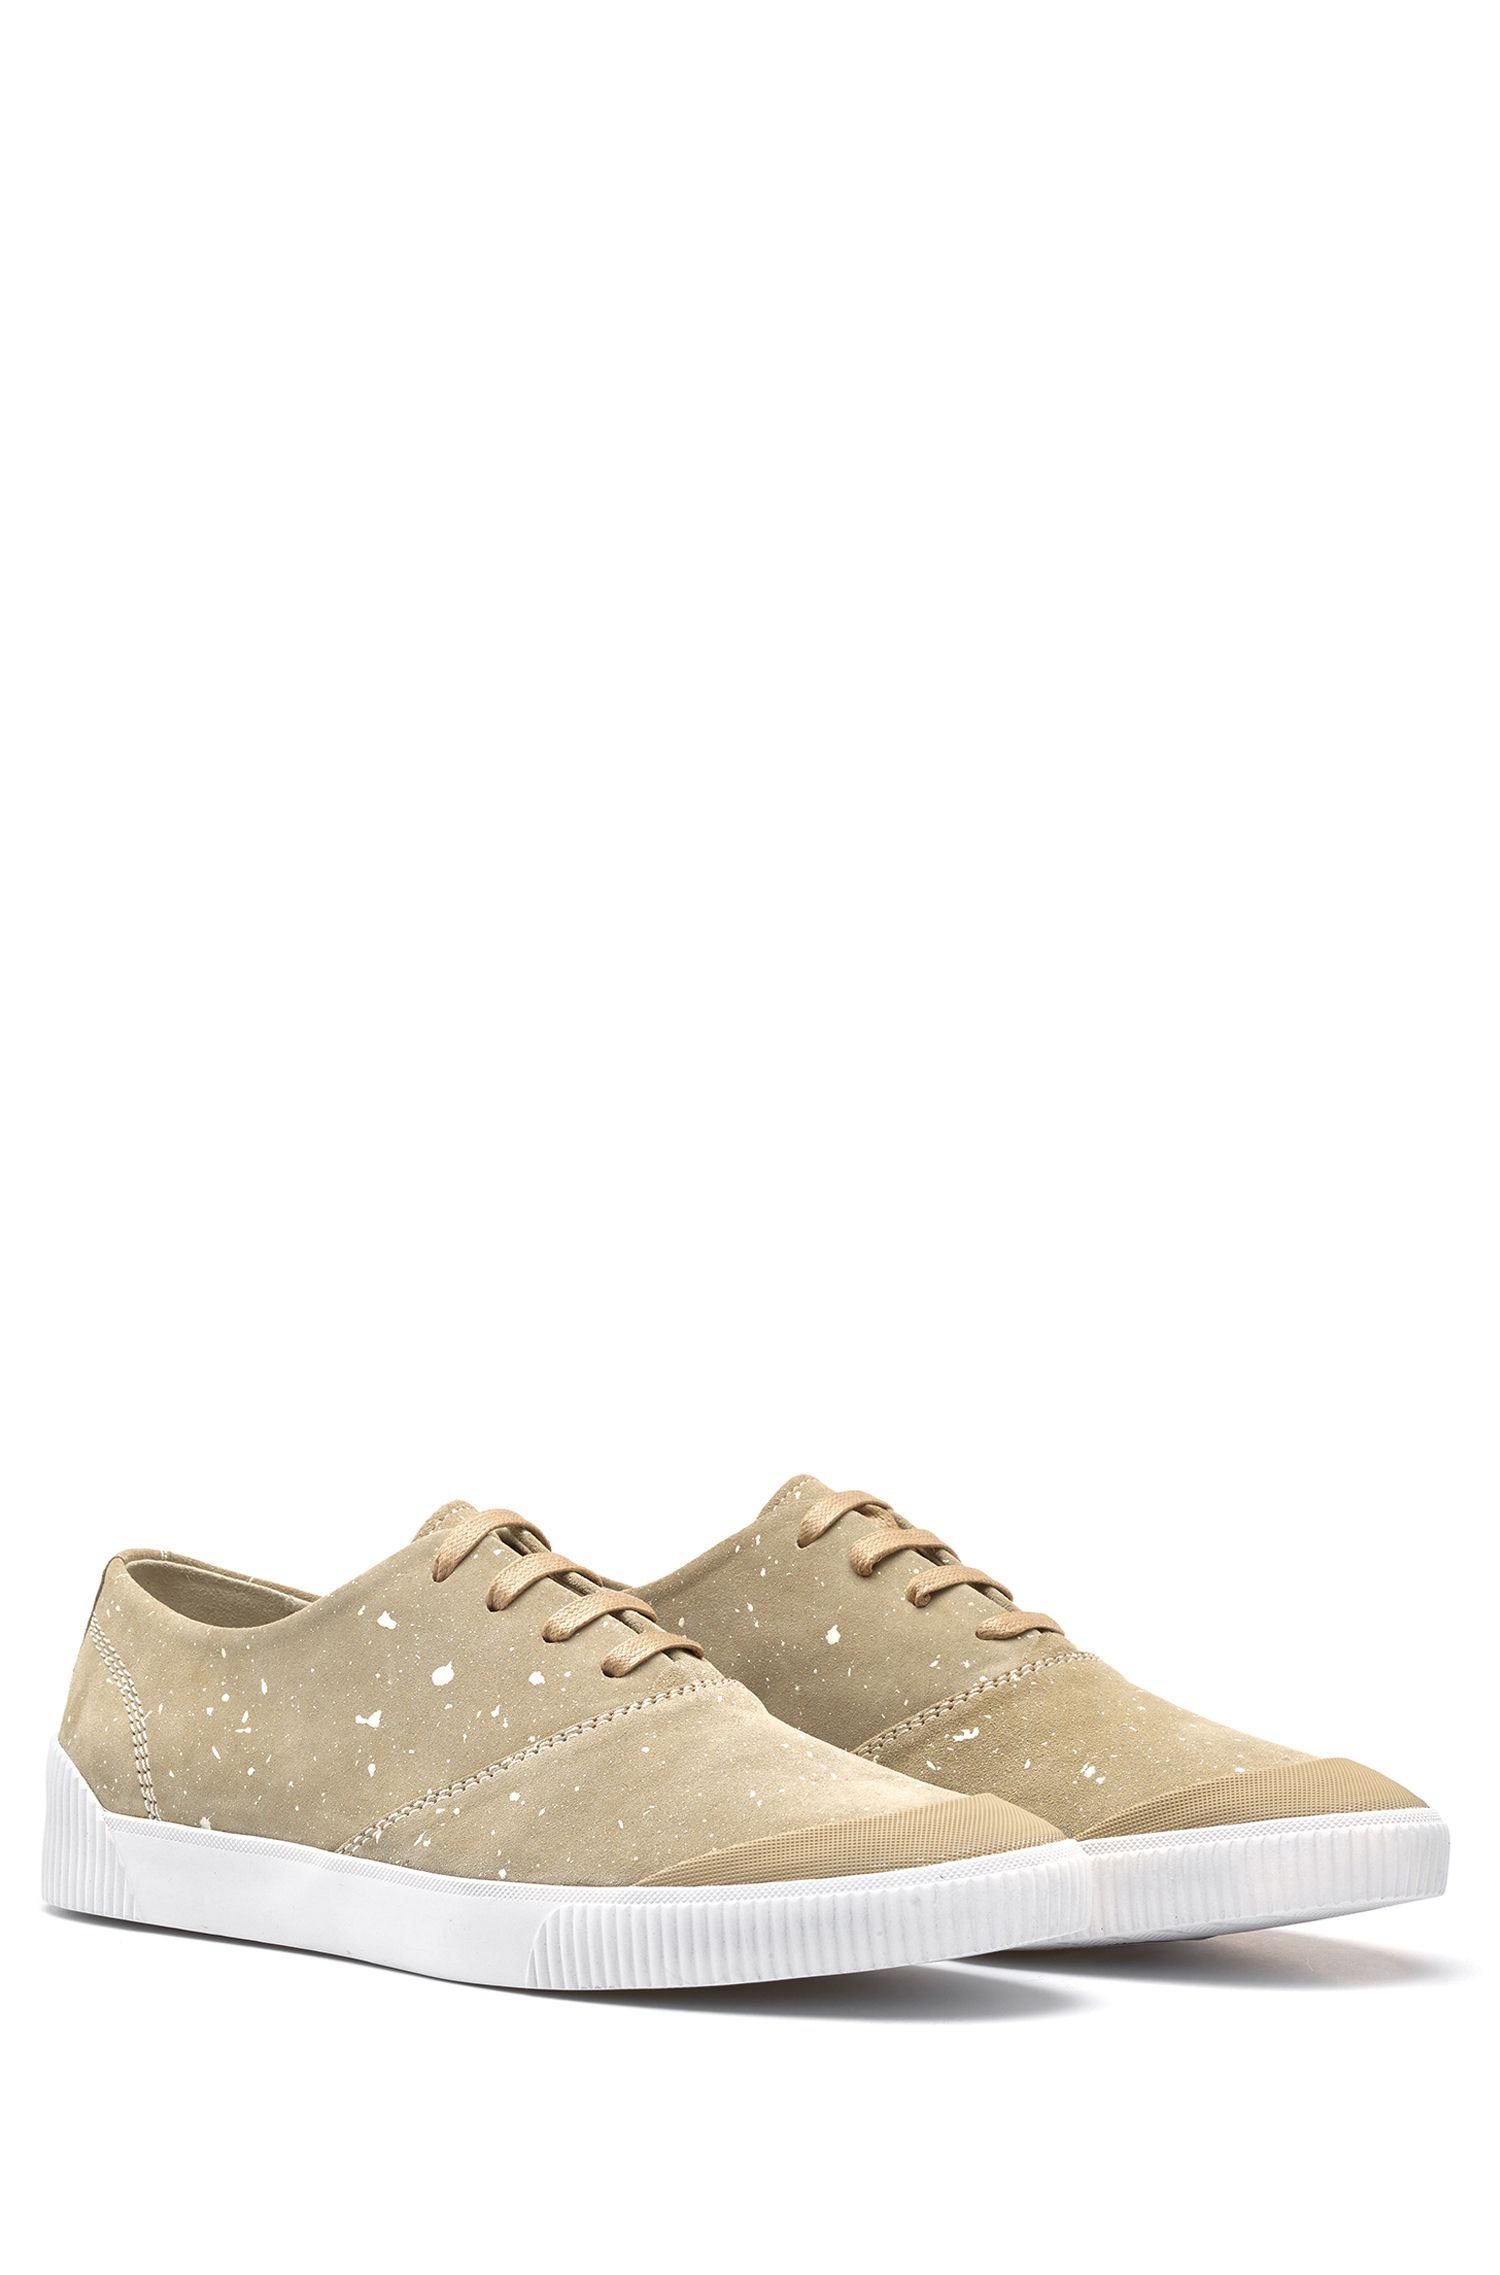 Paint-spatter trainers in suede